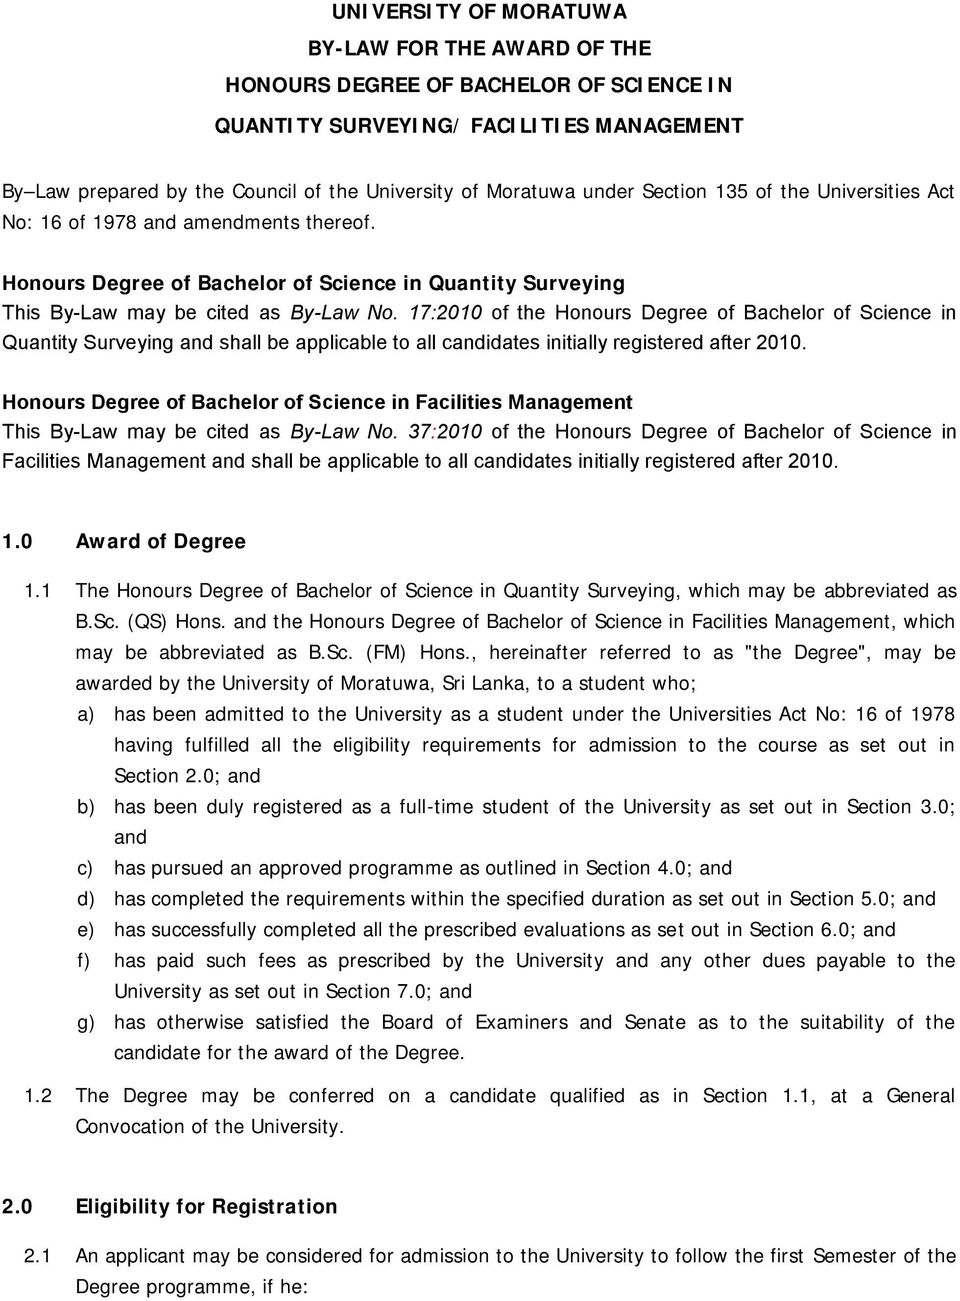 17:2010 of the Honours Degree of Bachelor of Science in Quantity Surveying and shall be applicable to all candidates initially registered after 2010.